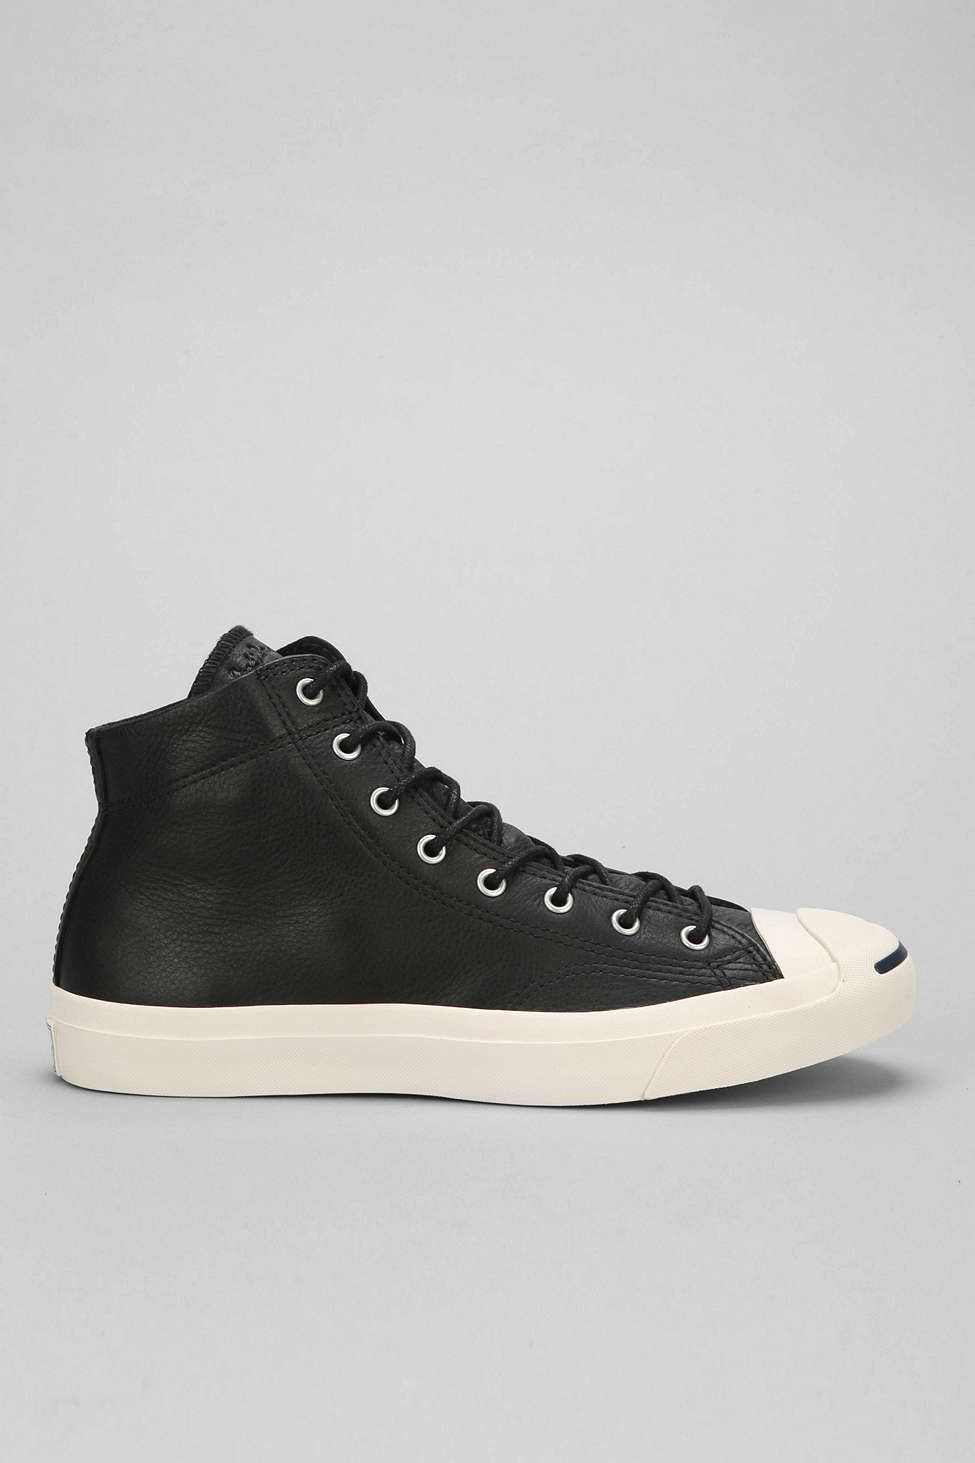 6b955e262c1a Converse Jack Purcell Mid-Top Leather Sneaker - Urban Outfitters